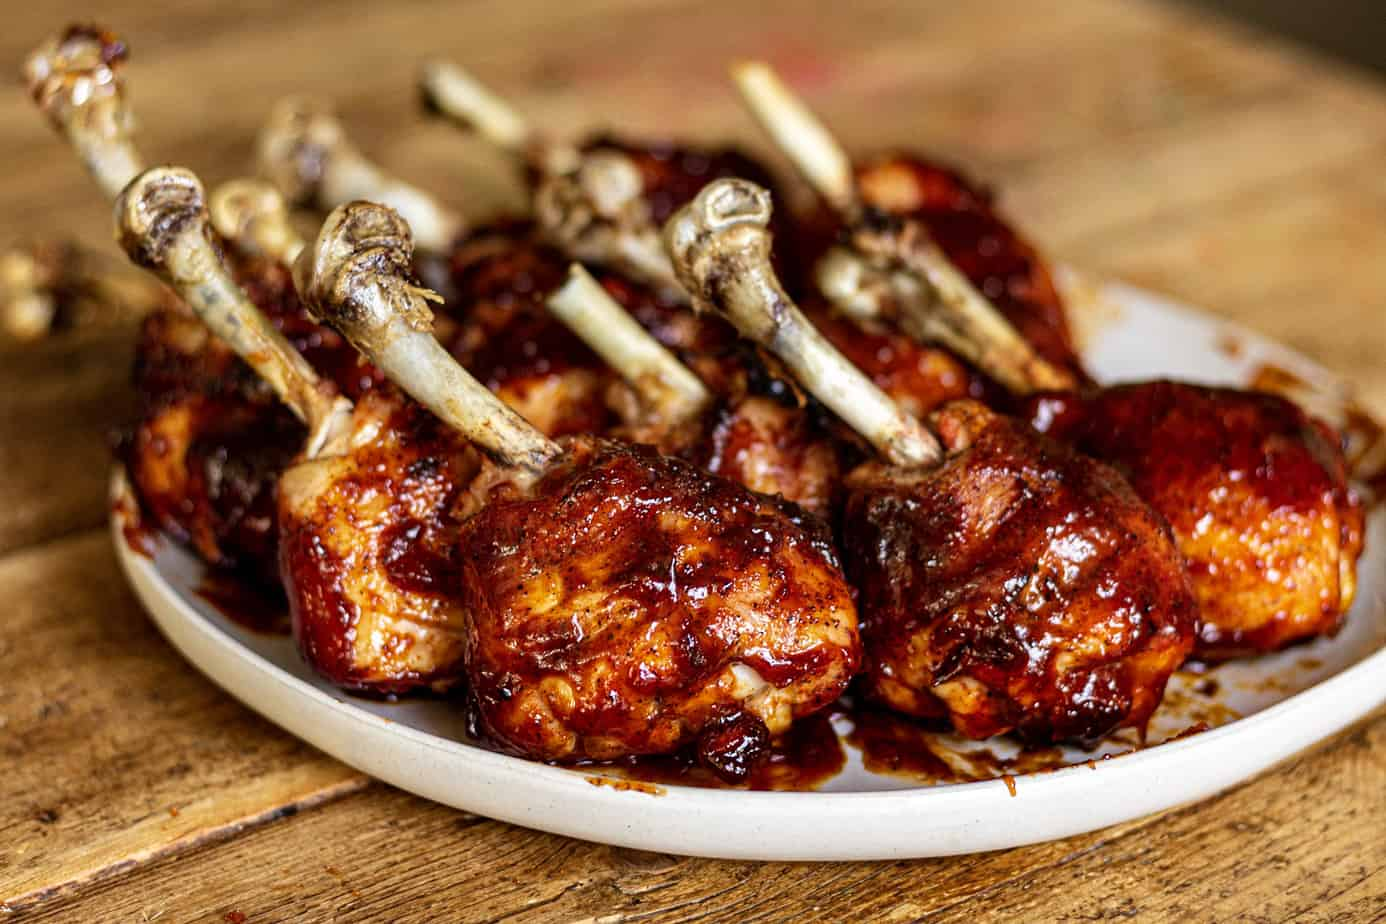 BBQ Chicken Lollipops on a plate